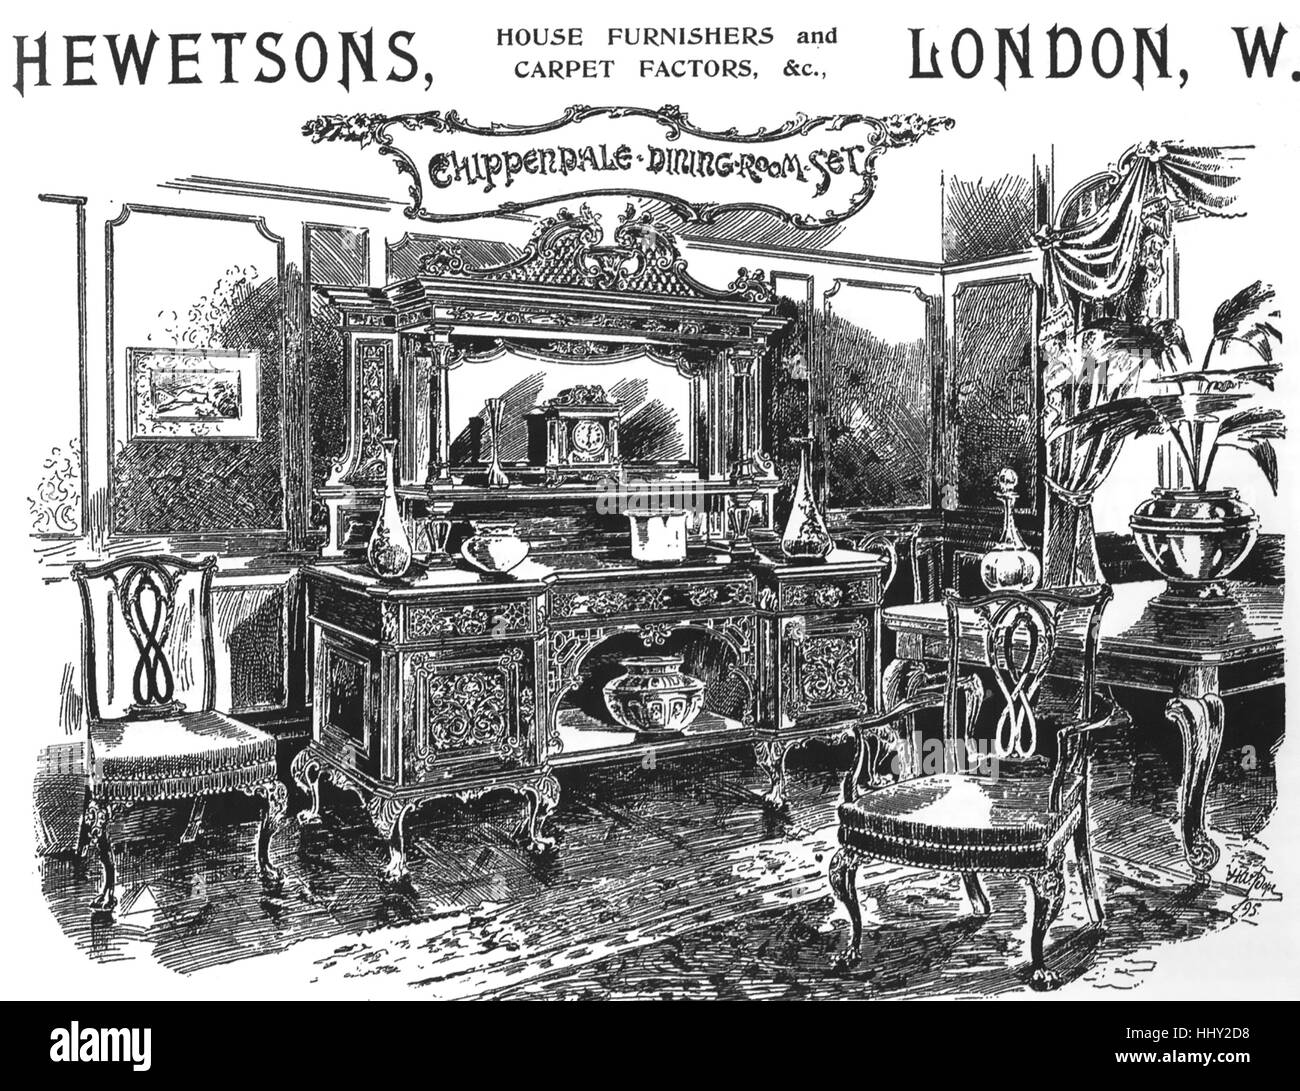 HEWETSON S FURNISHERS Advert about 1890 for the Tottenham Court Road   London  home furnishing company. HEWETSON S FURNISHERS Advert about 1890 for the Tottenham Court